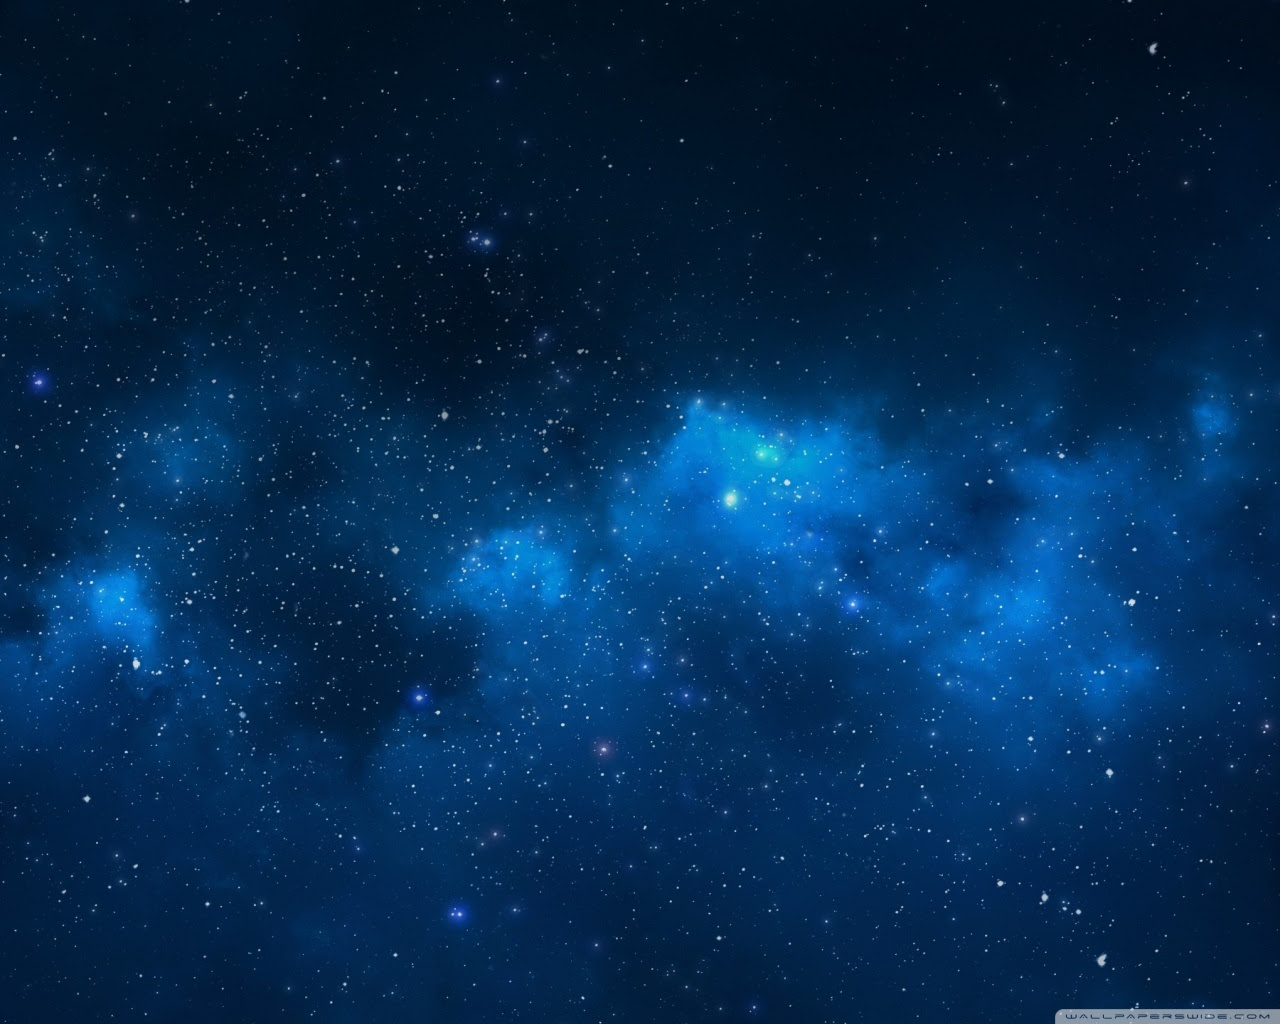 Stars Galaxies Ultra Hd Desktop Background Wallpaper For